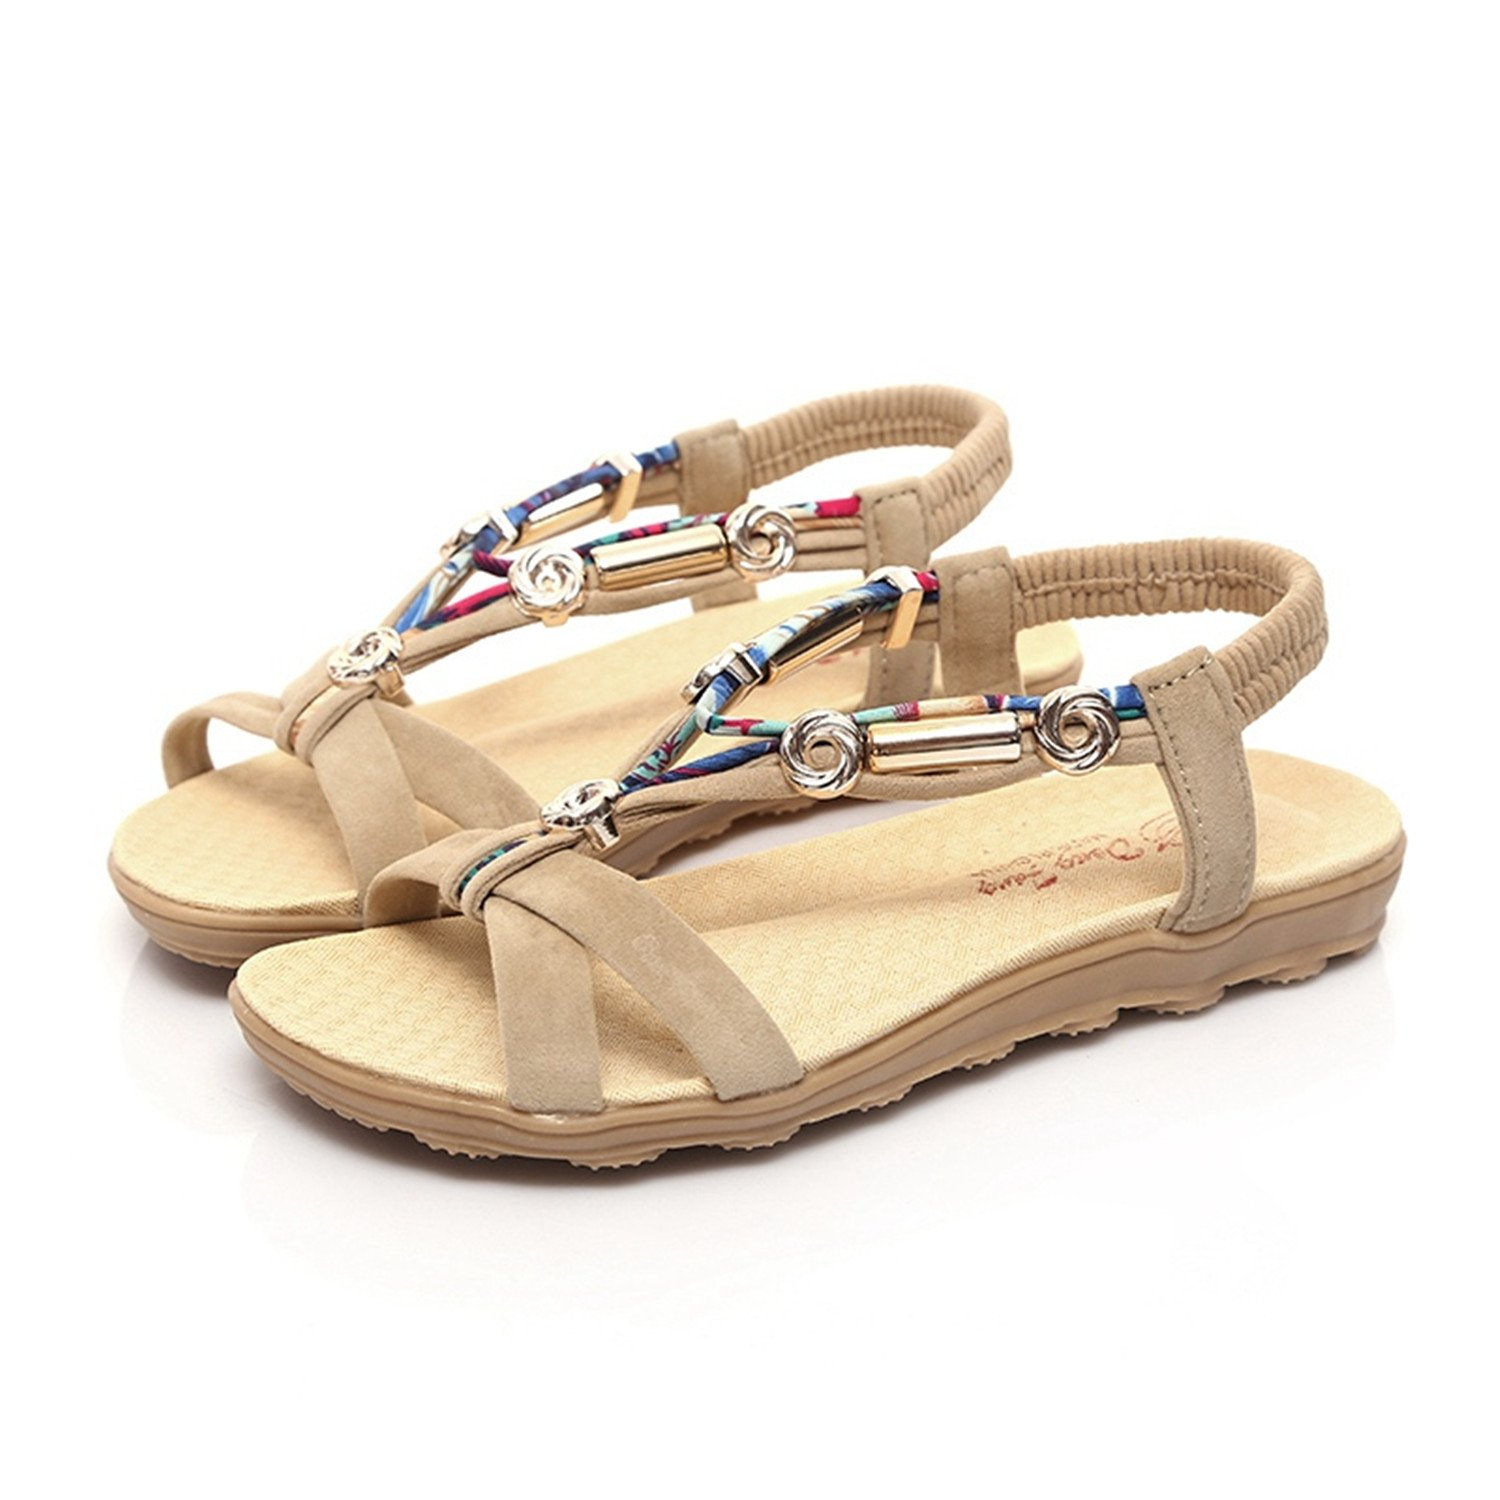 Women Sandals Women Flats Sandals Fashion Flip Flops Shoes Comfortable Women Shoes Casual Ladies Sandals B07C9MXS3B 7 B(M) US|Beige